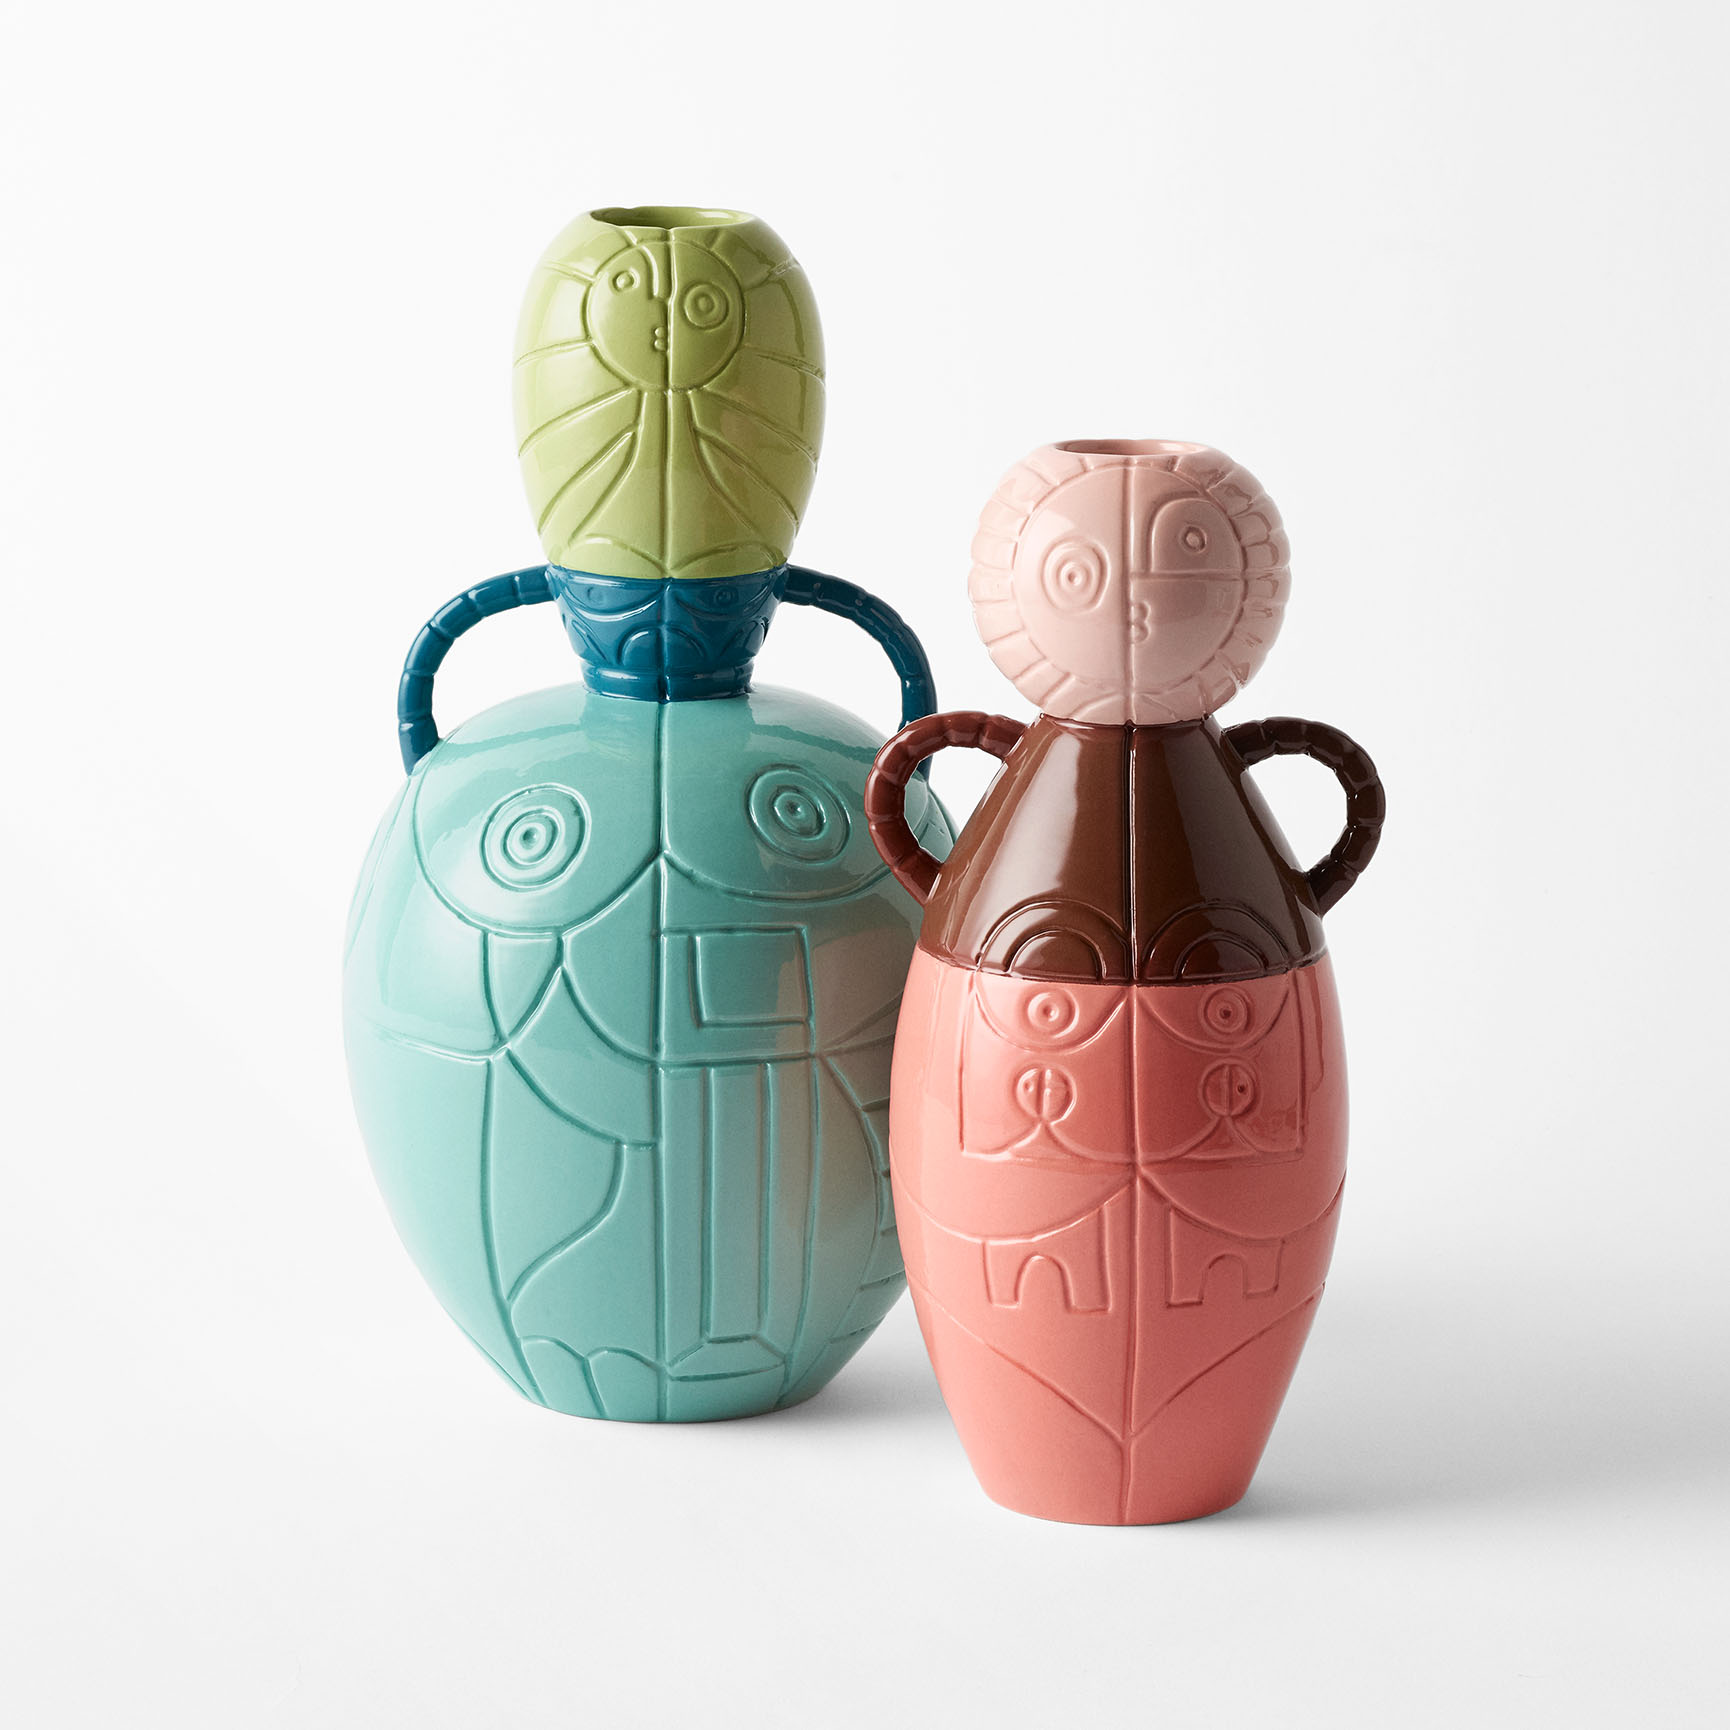 Vase Foglia and Seme 2019